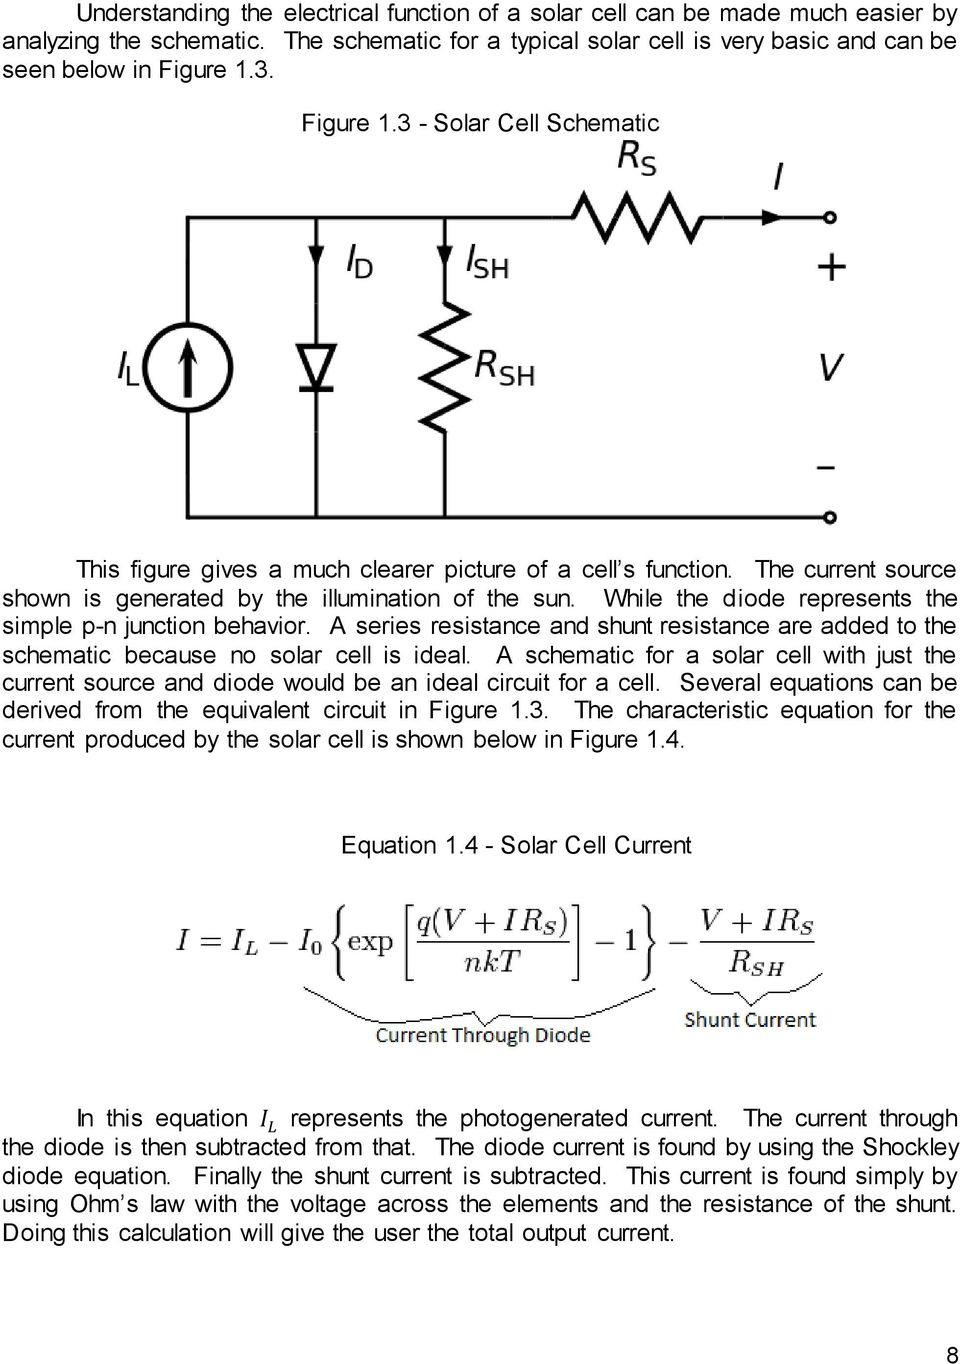 Msu Solar Car Racing Maximum Power Point Tracker Pdf Shockley Diode While The Represents Simple P N Junction Behavior A Series Resistance And Shunt